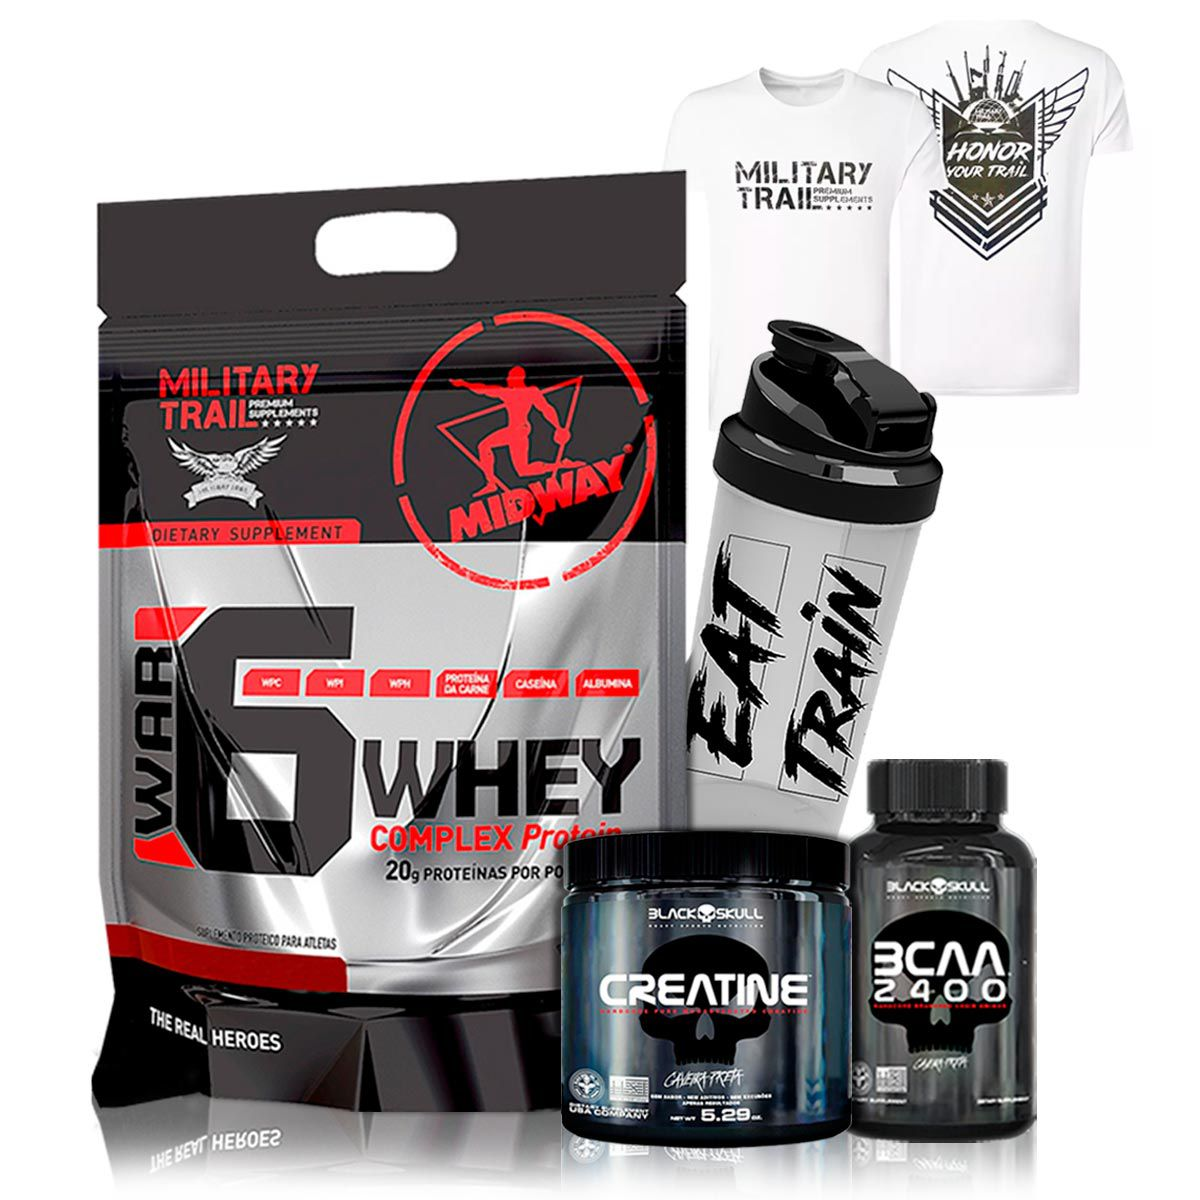 Kit Whey 900g + Bcaa + Creatina + Shaker - Midway Labs